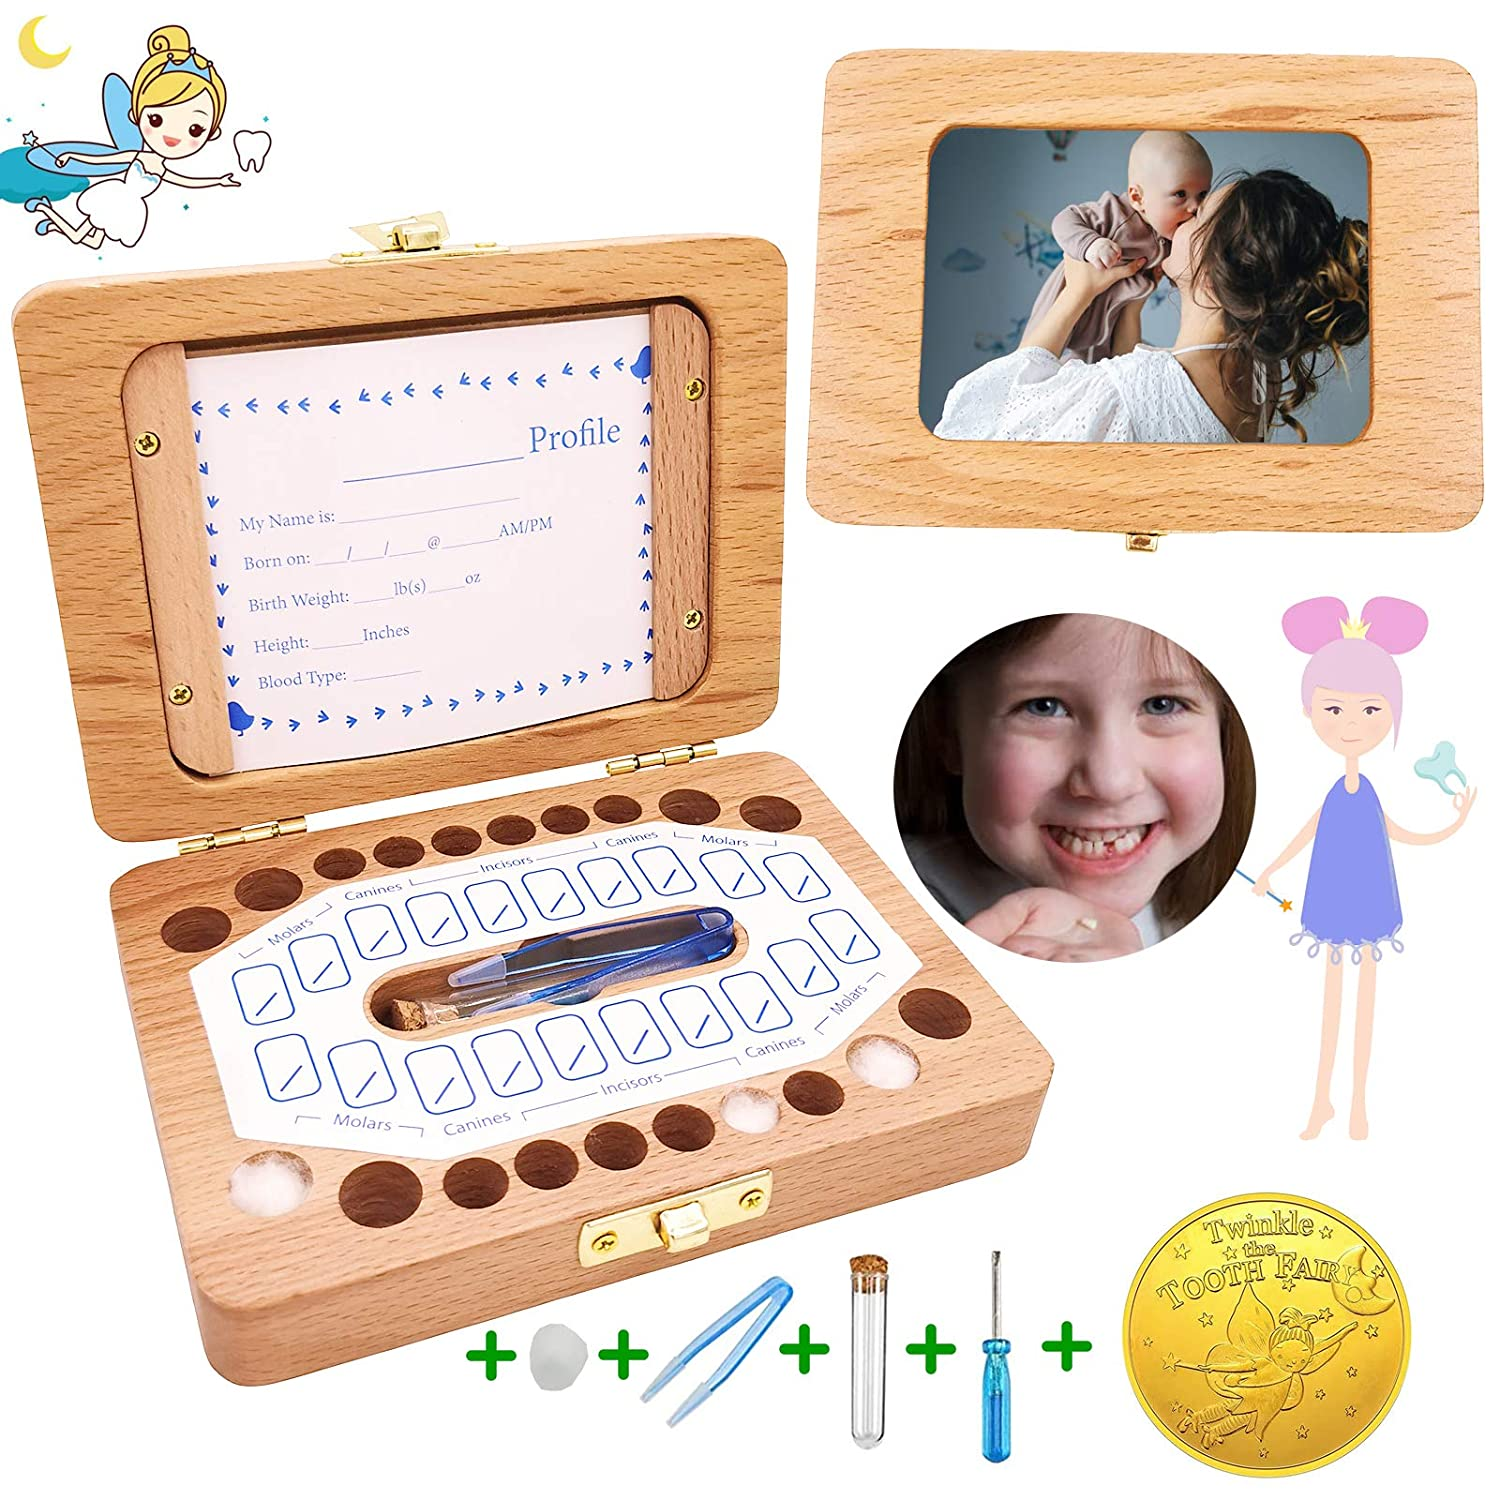 Baby Tooth Box, Solid Wood Kids Keepsake Organizer Holder for Baby Teeth and Hair with Photo Frame and 1pcs Tooth Fairy Coin, Baby Shower& Birthday Gift